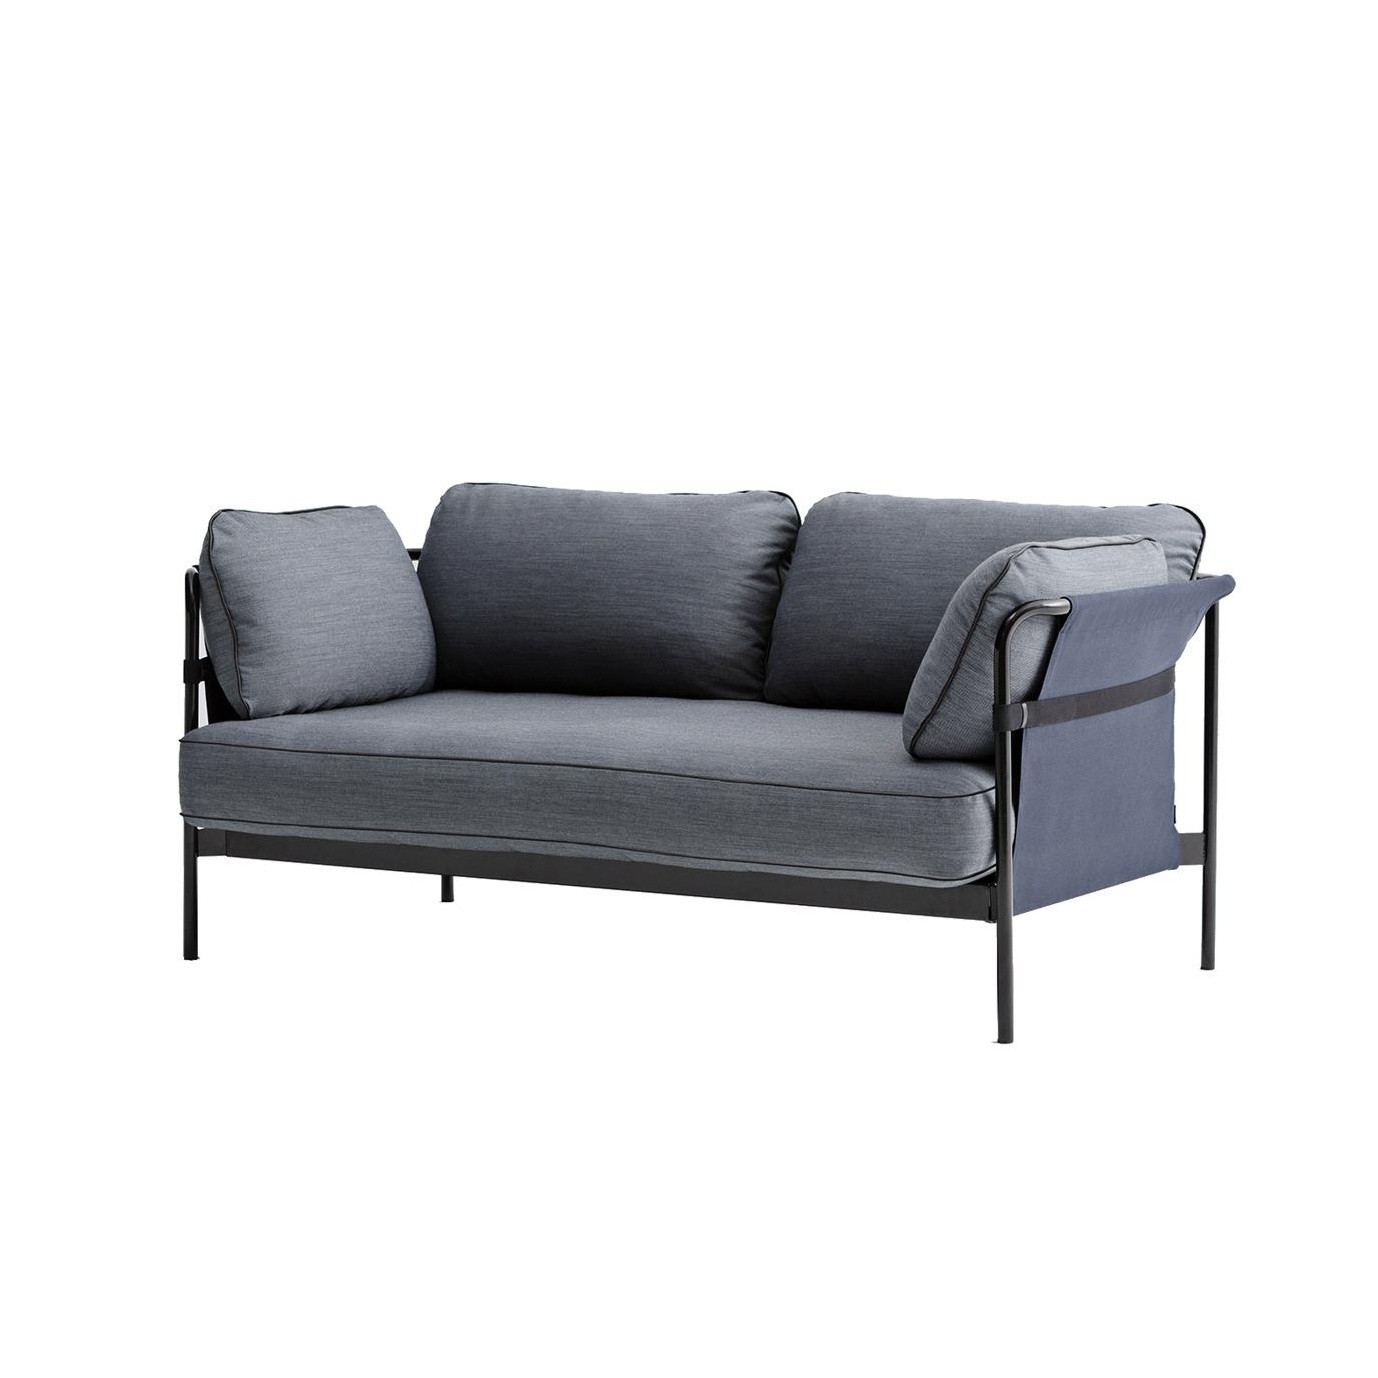 Hay Can 2 Seater Sofa Dark Blue Fabric Surface 990 172 4